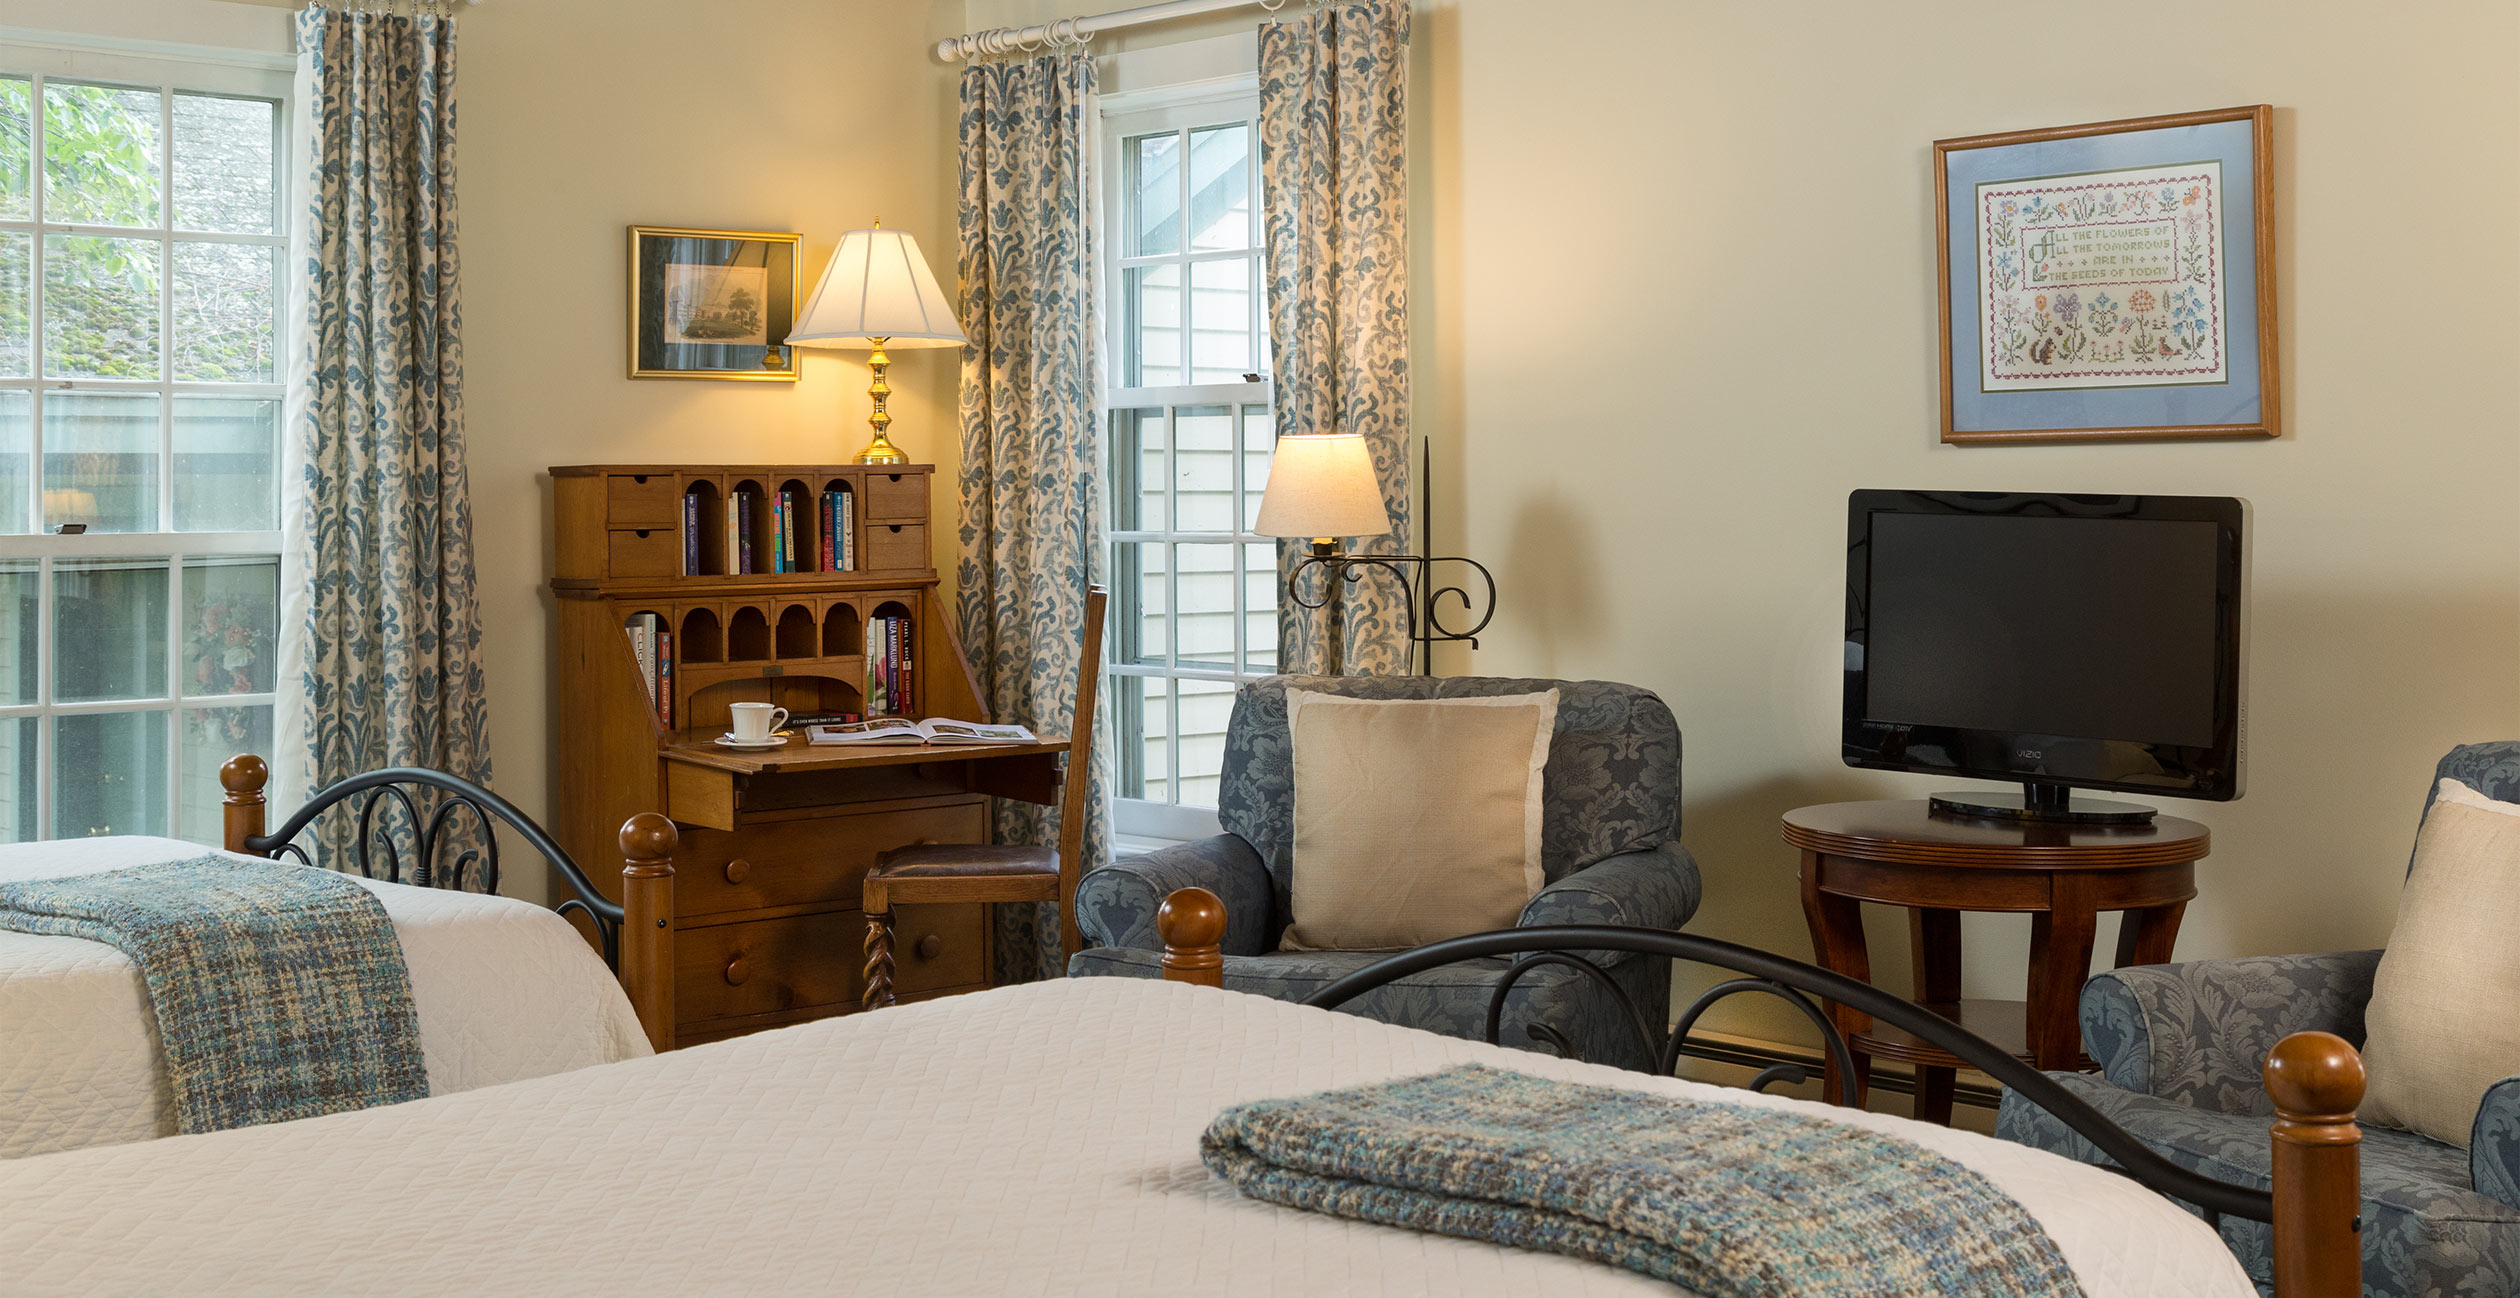 Two double beds at our inn near Brattleboro, VT